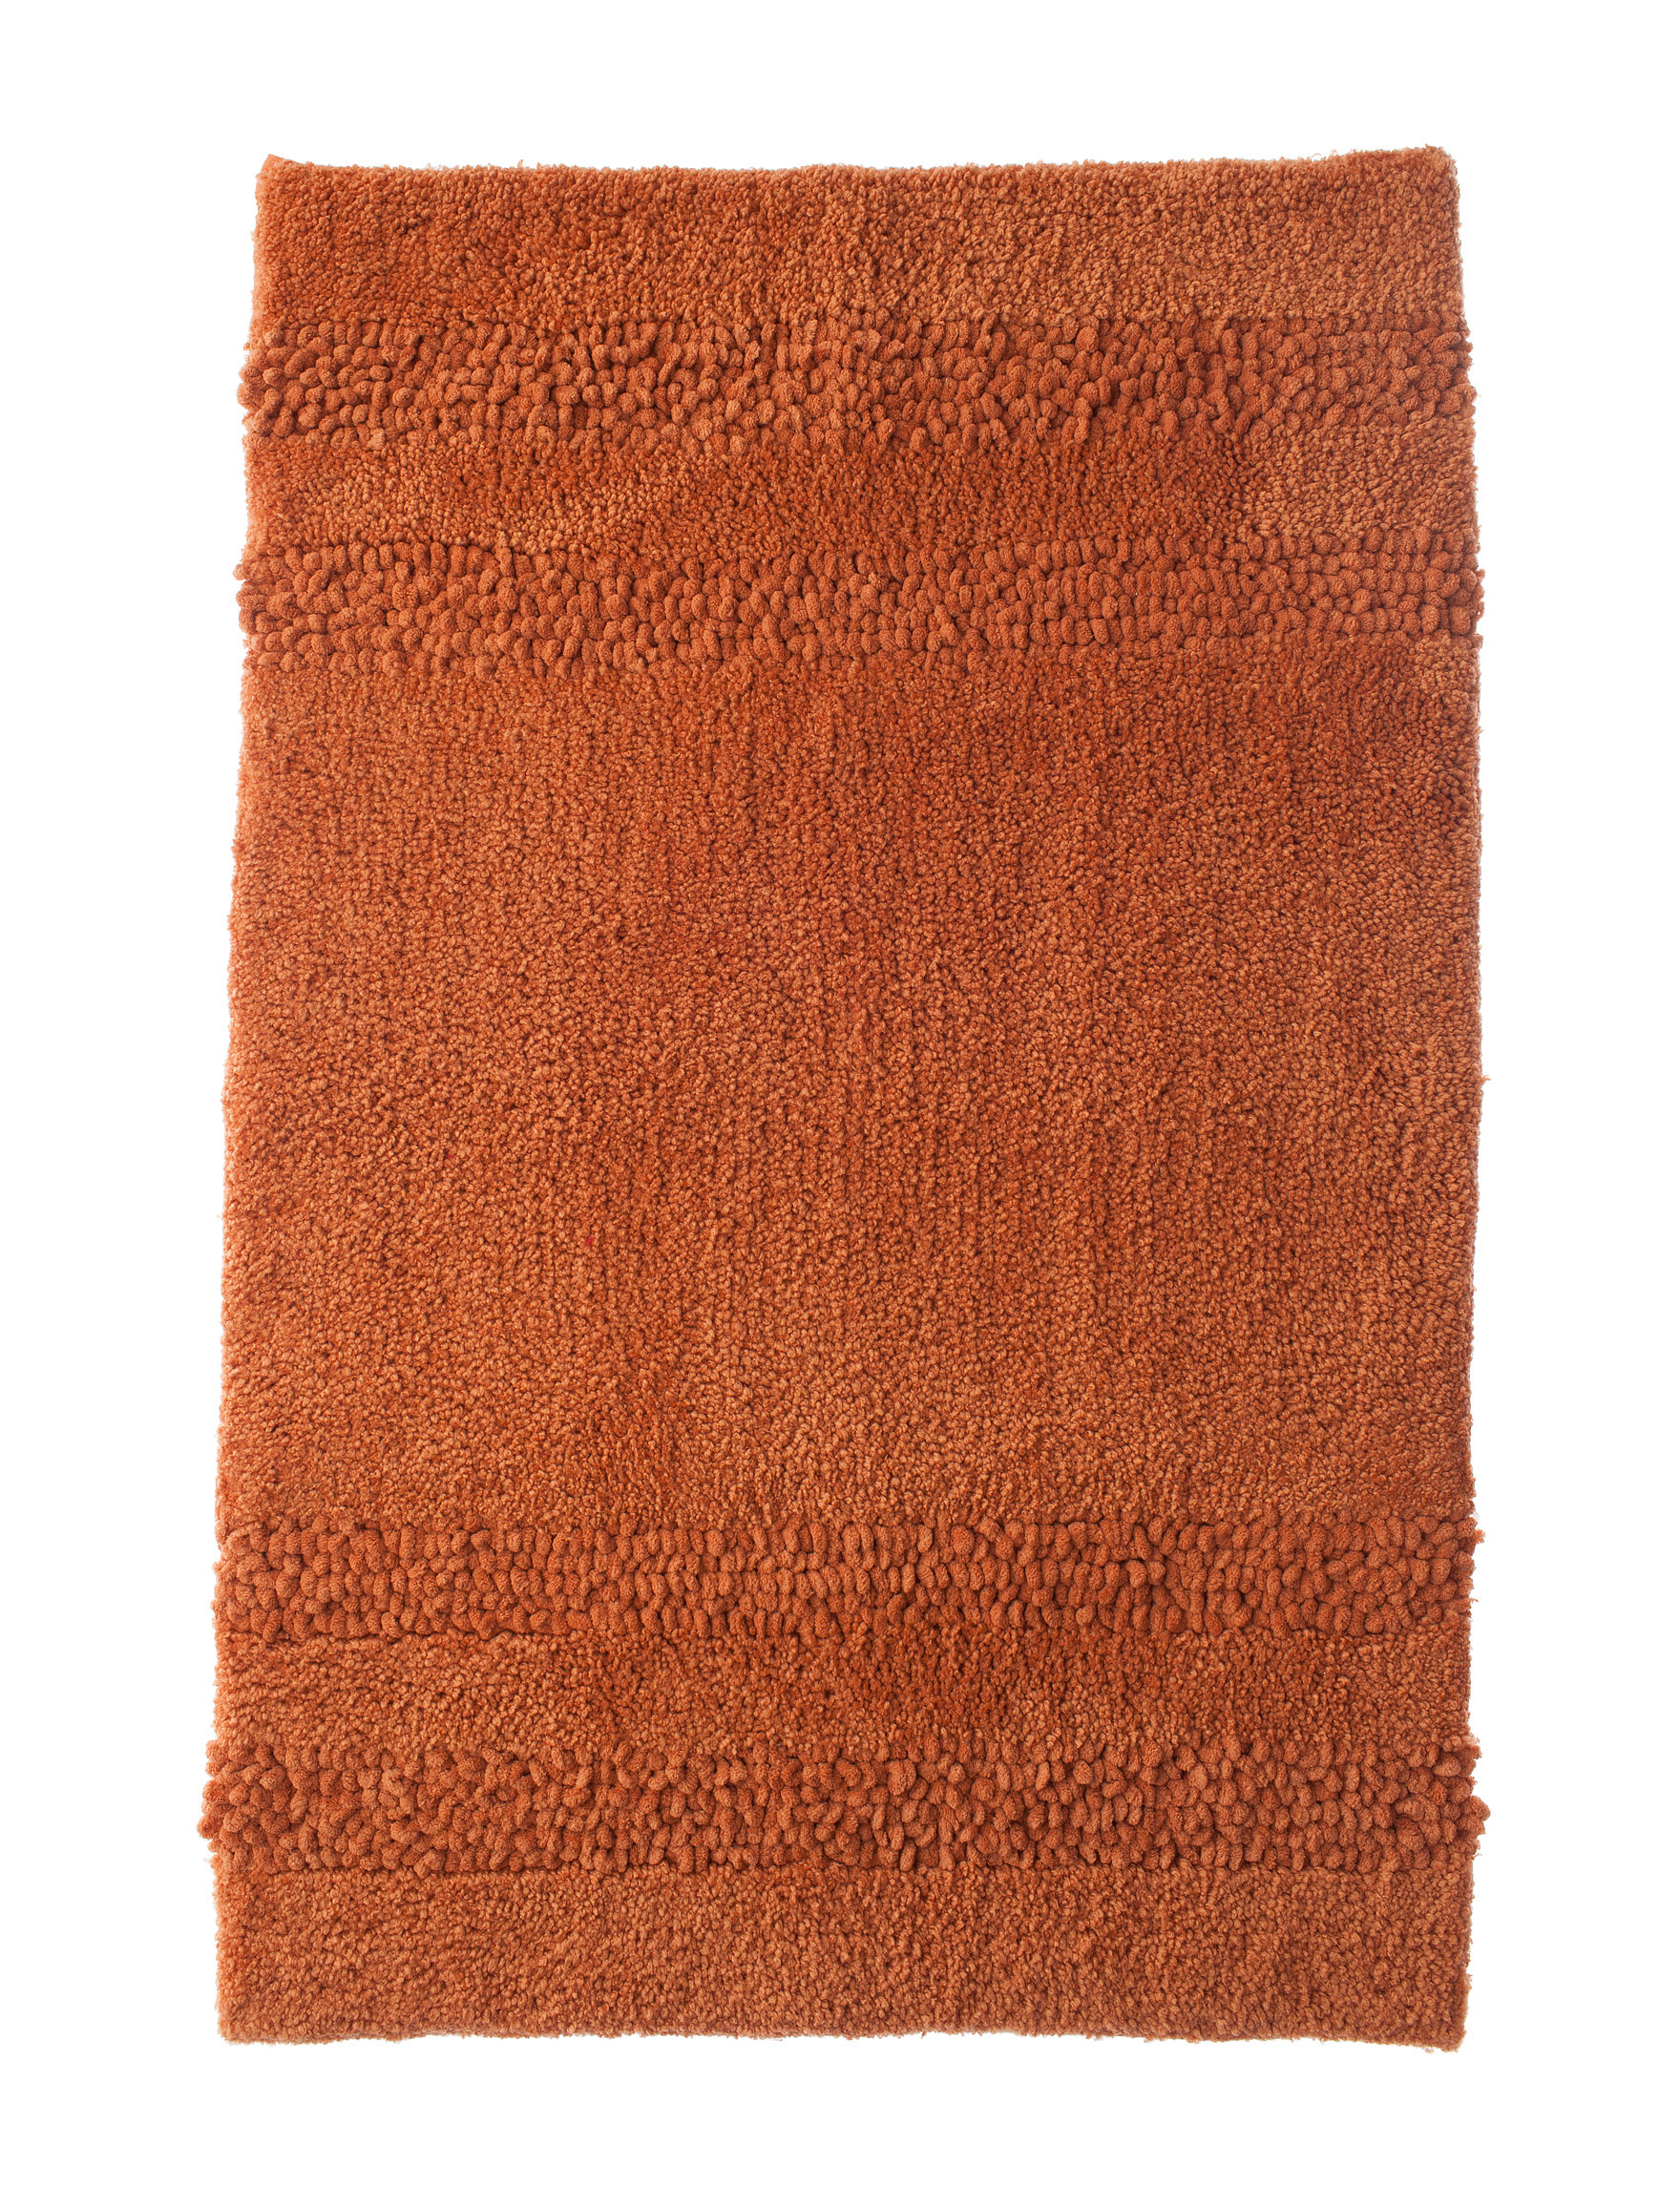 Great Hotels Collection Apricot Bath Towels Bath Rugs & Mats